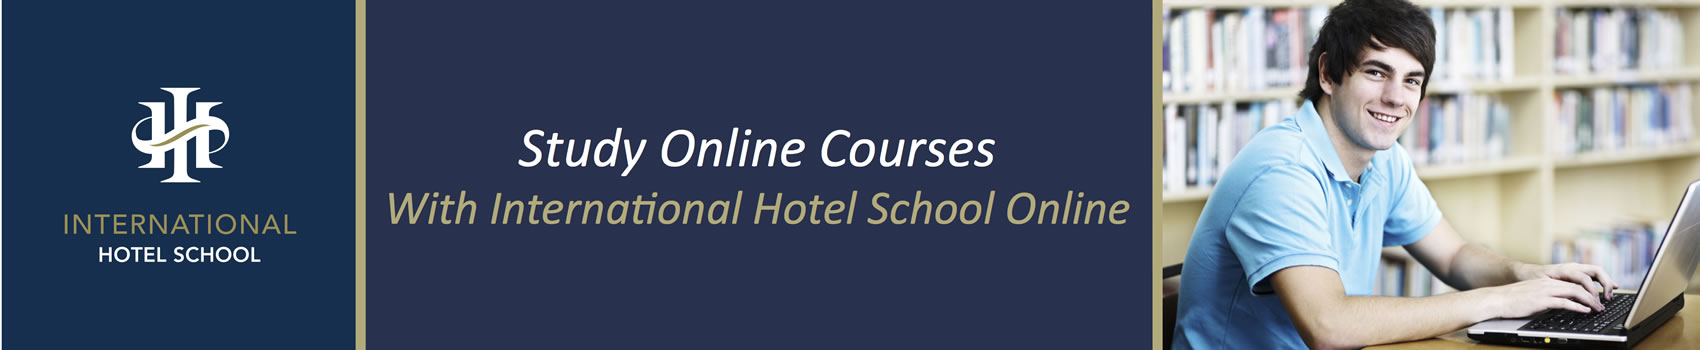 Study online with International Hotel School